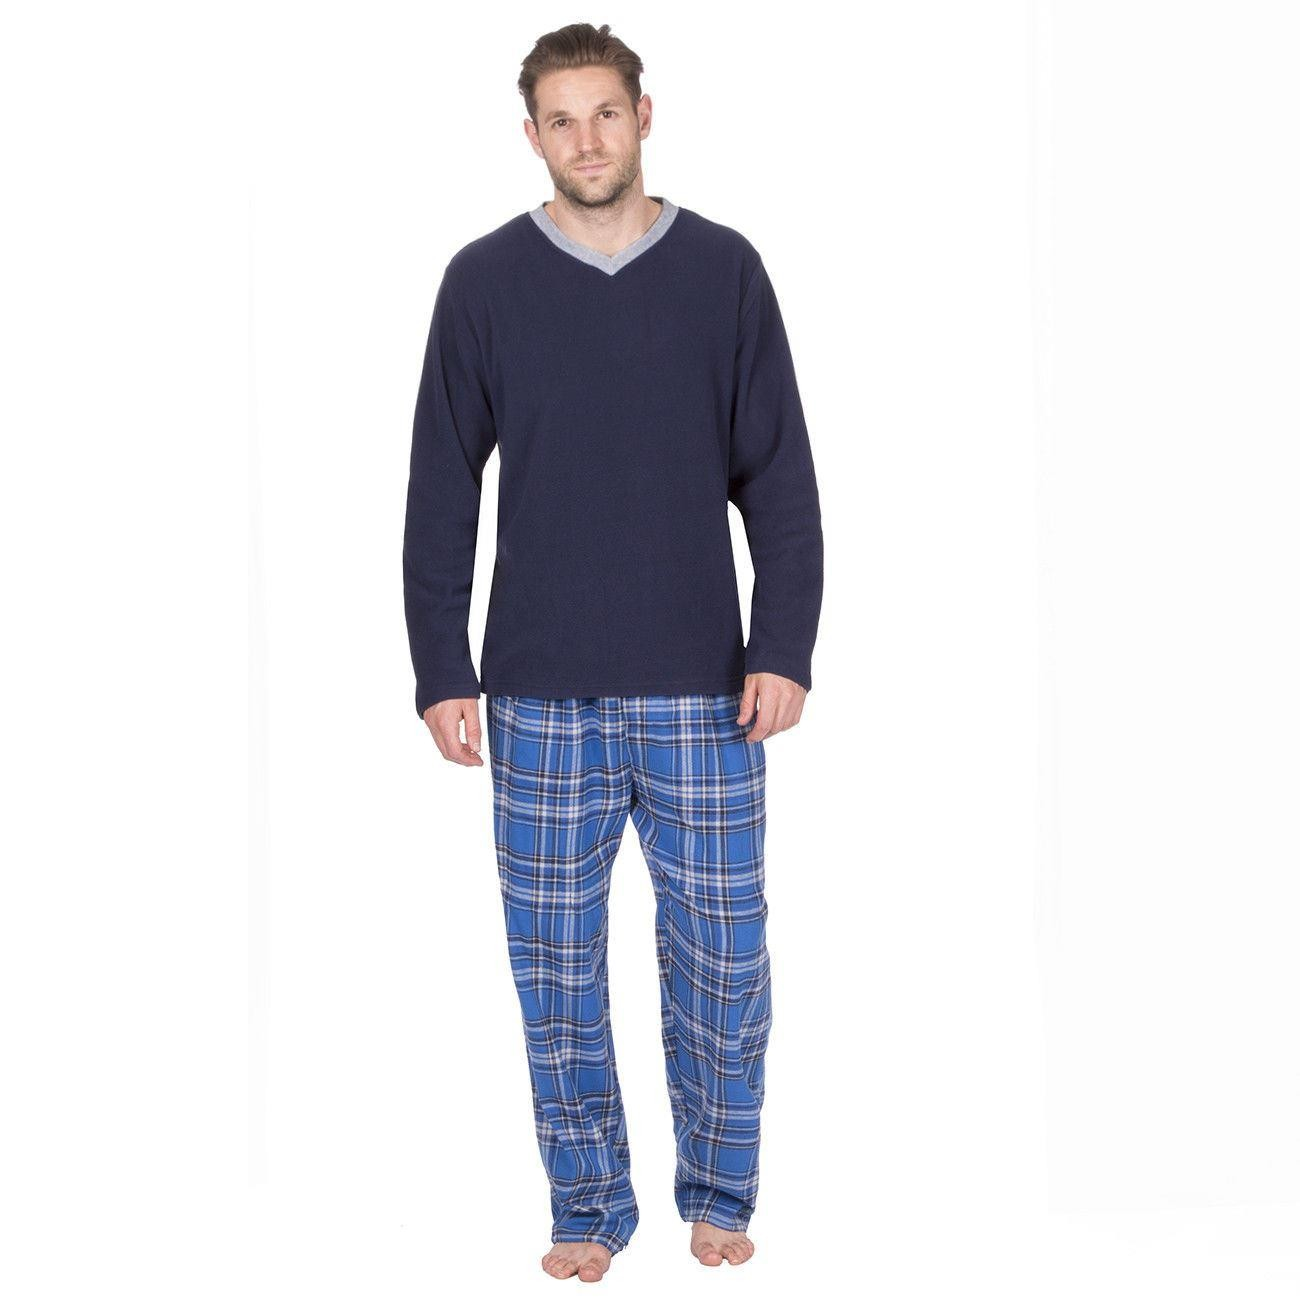 Cargo Bay Mens Fleece/Flannel Pyjamas - Navy